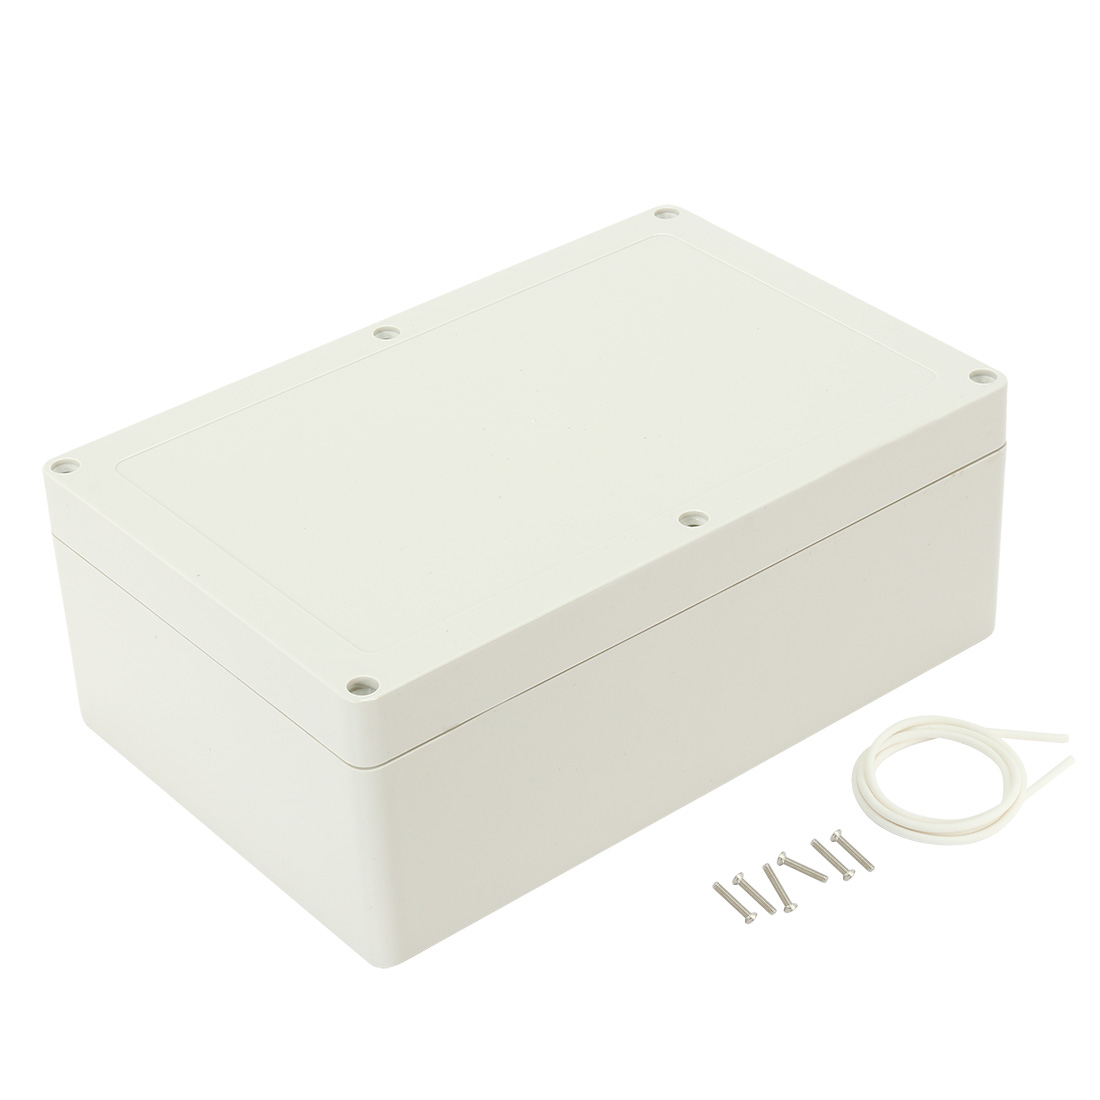 """9""""x5.9""""x3.43"""" ABS Junction Box Universal Electric Project Enclosure"""